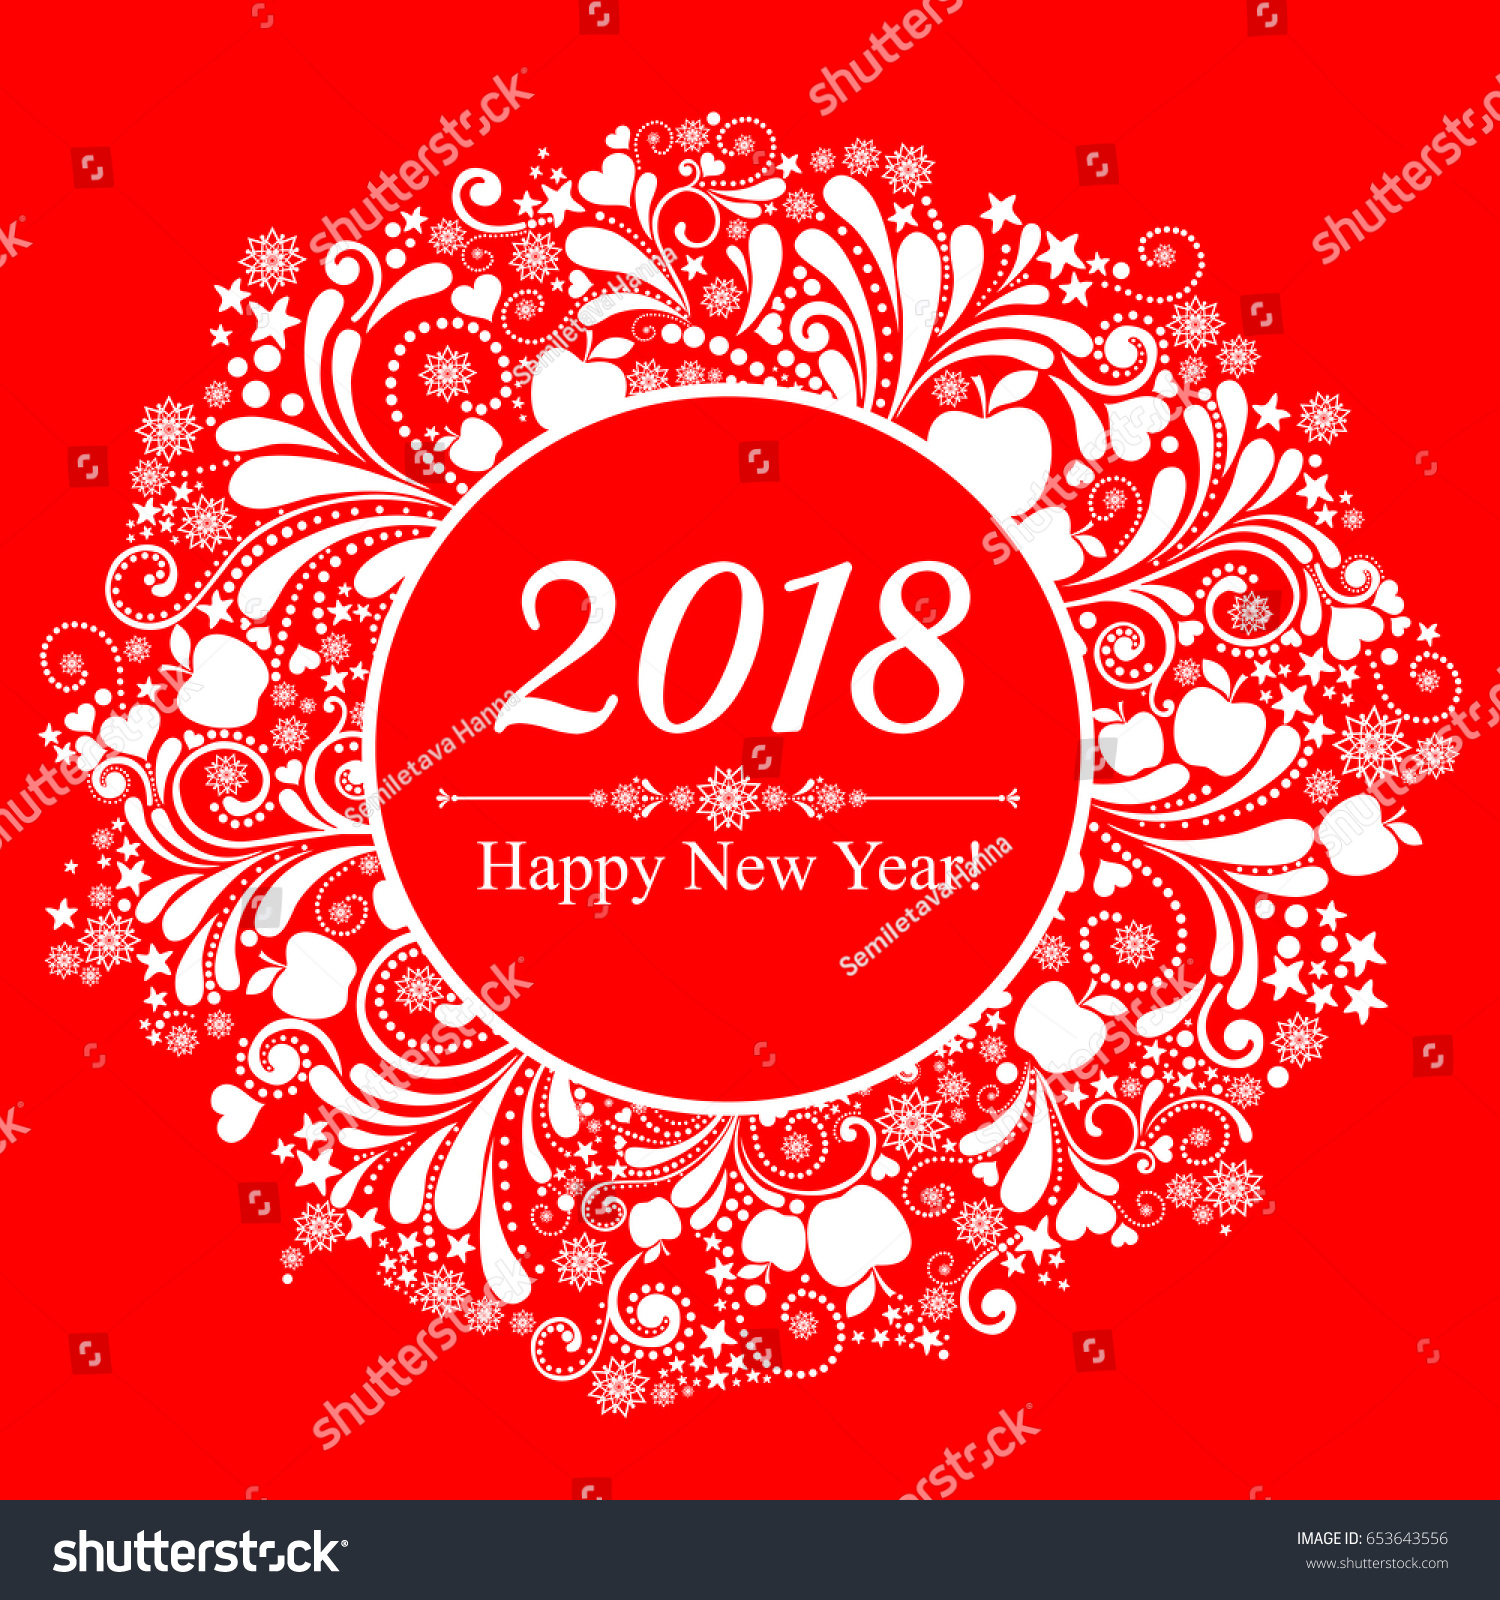 happy new year 2018 celebration red background with christmas wreath and place for your text